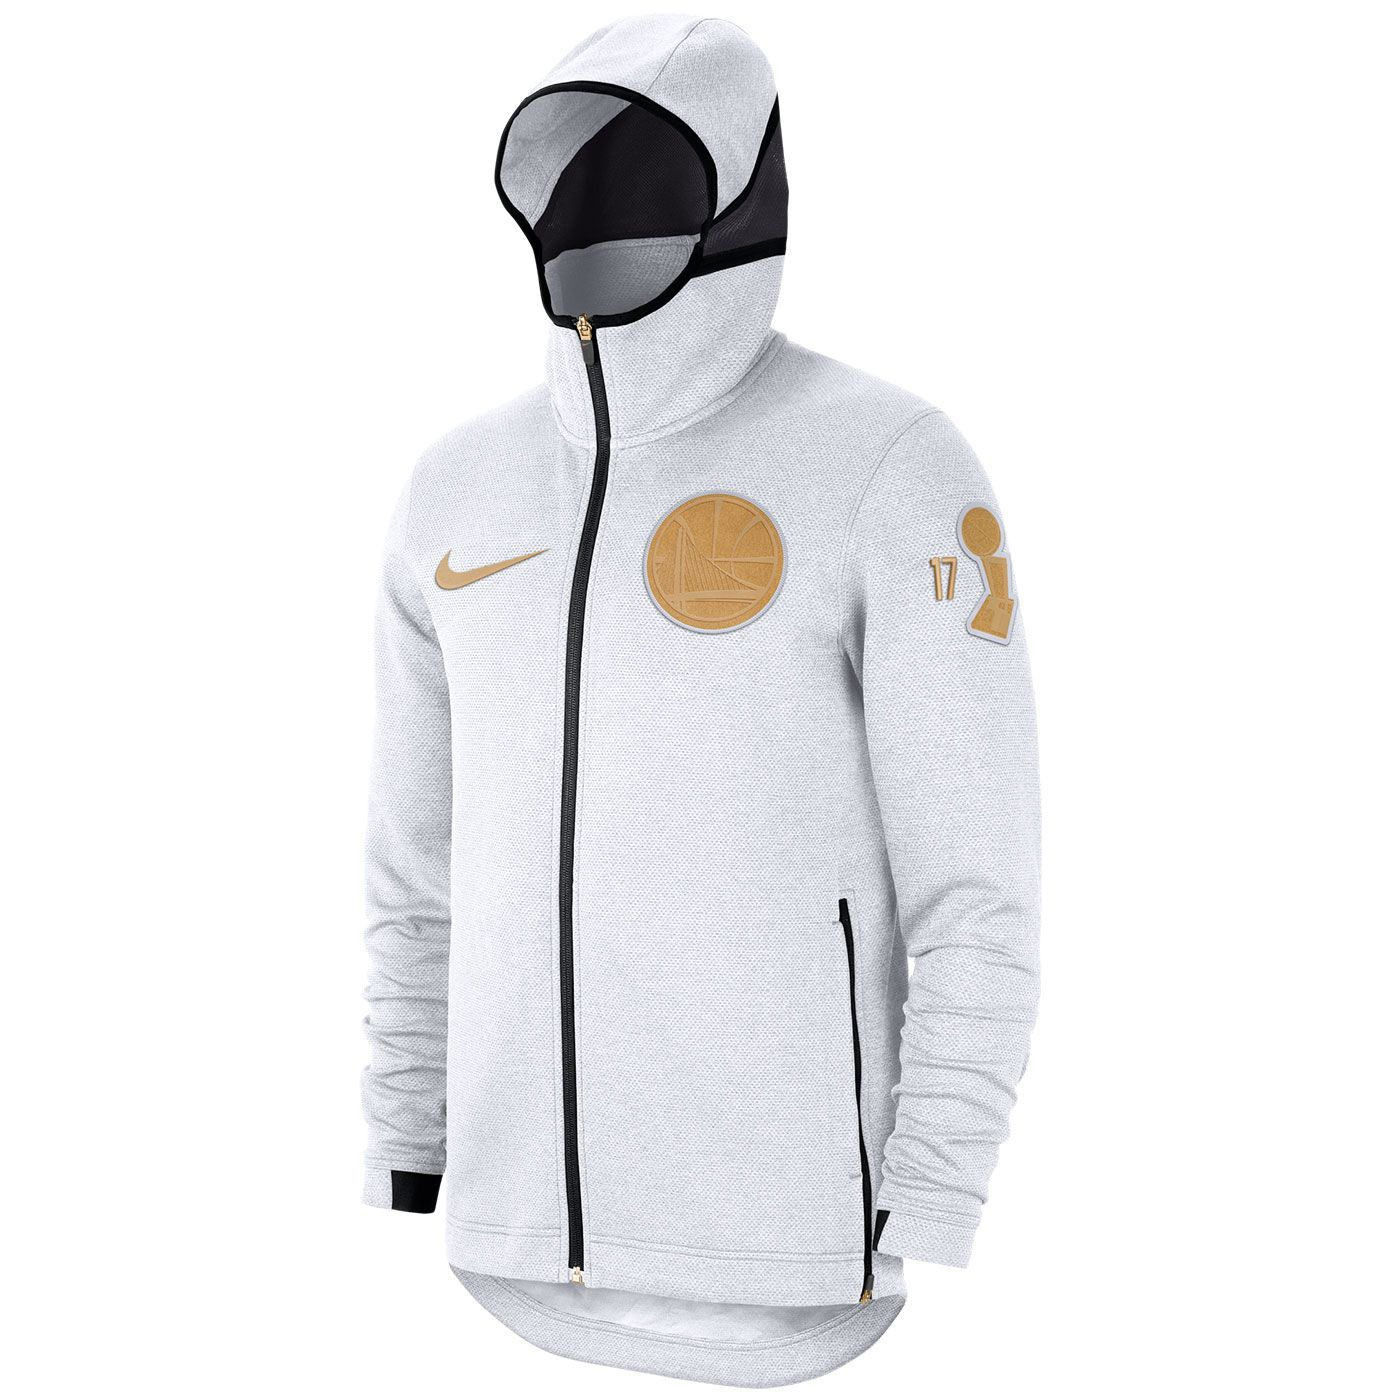 7fde0bde8 Golden State Warriors Nike Men's Therma Flex Back to Back Champions ...